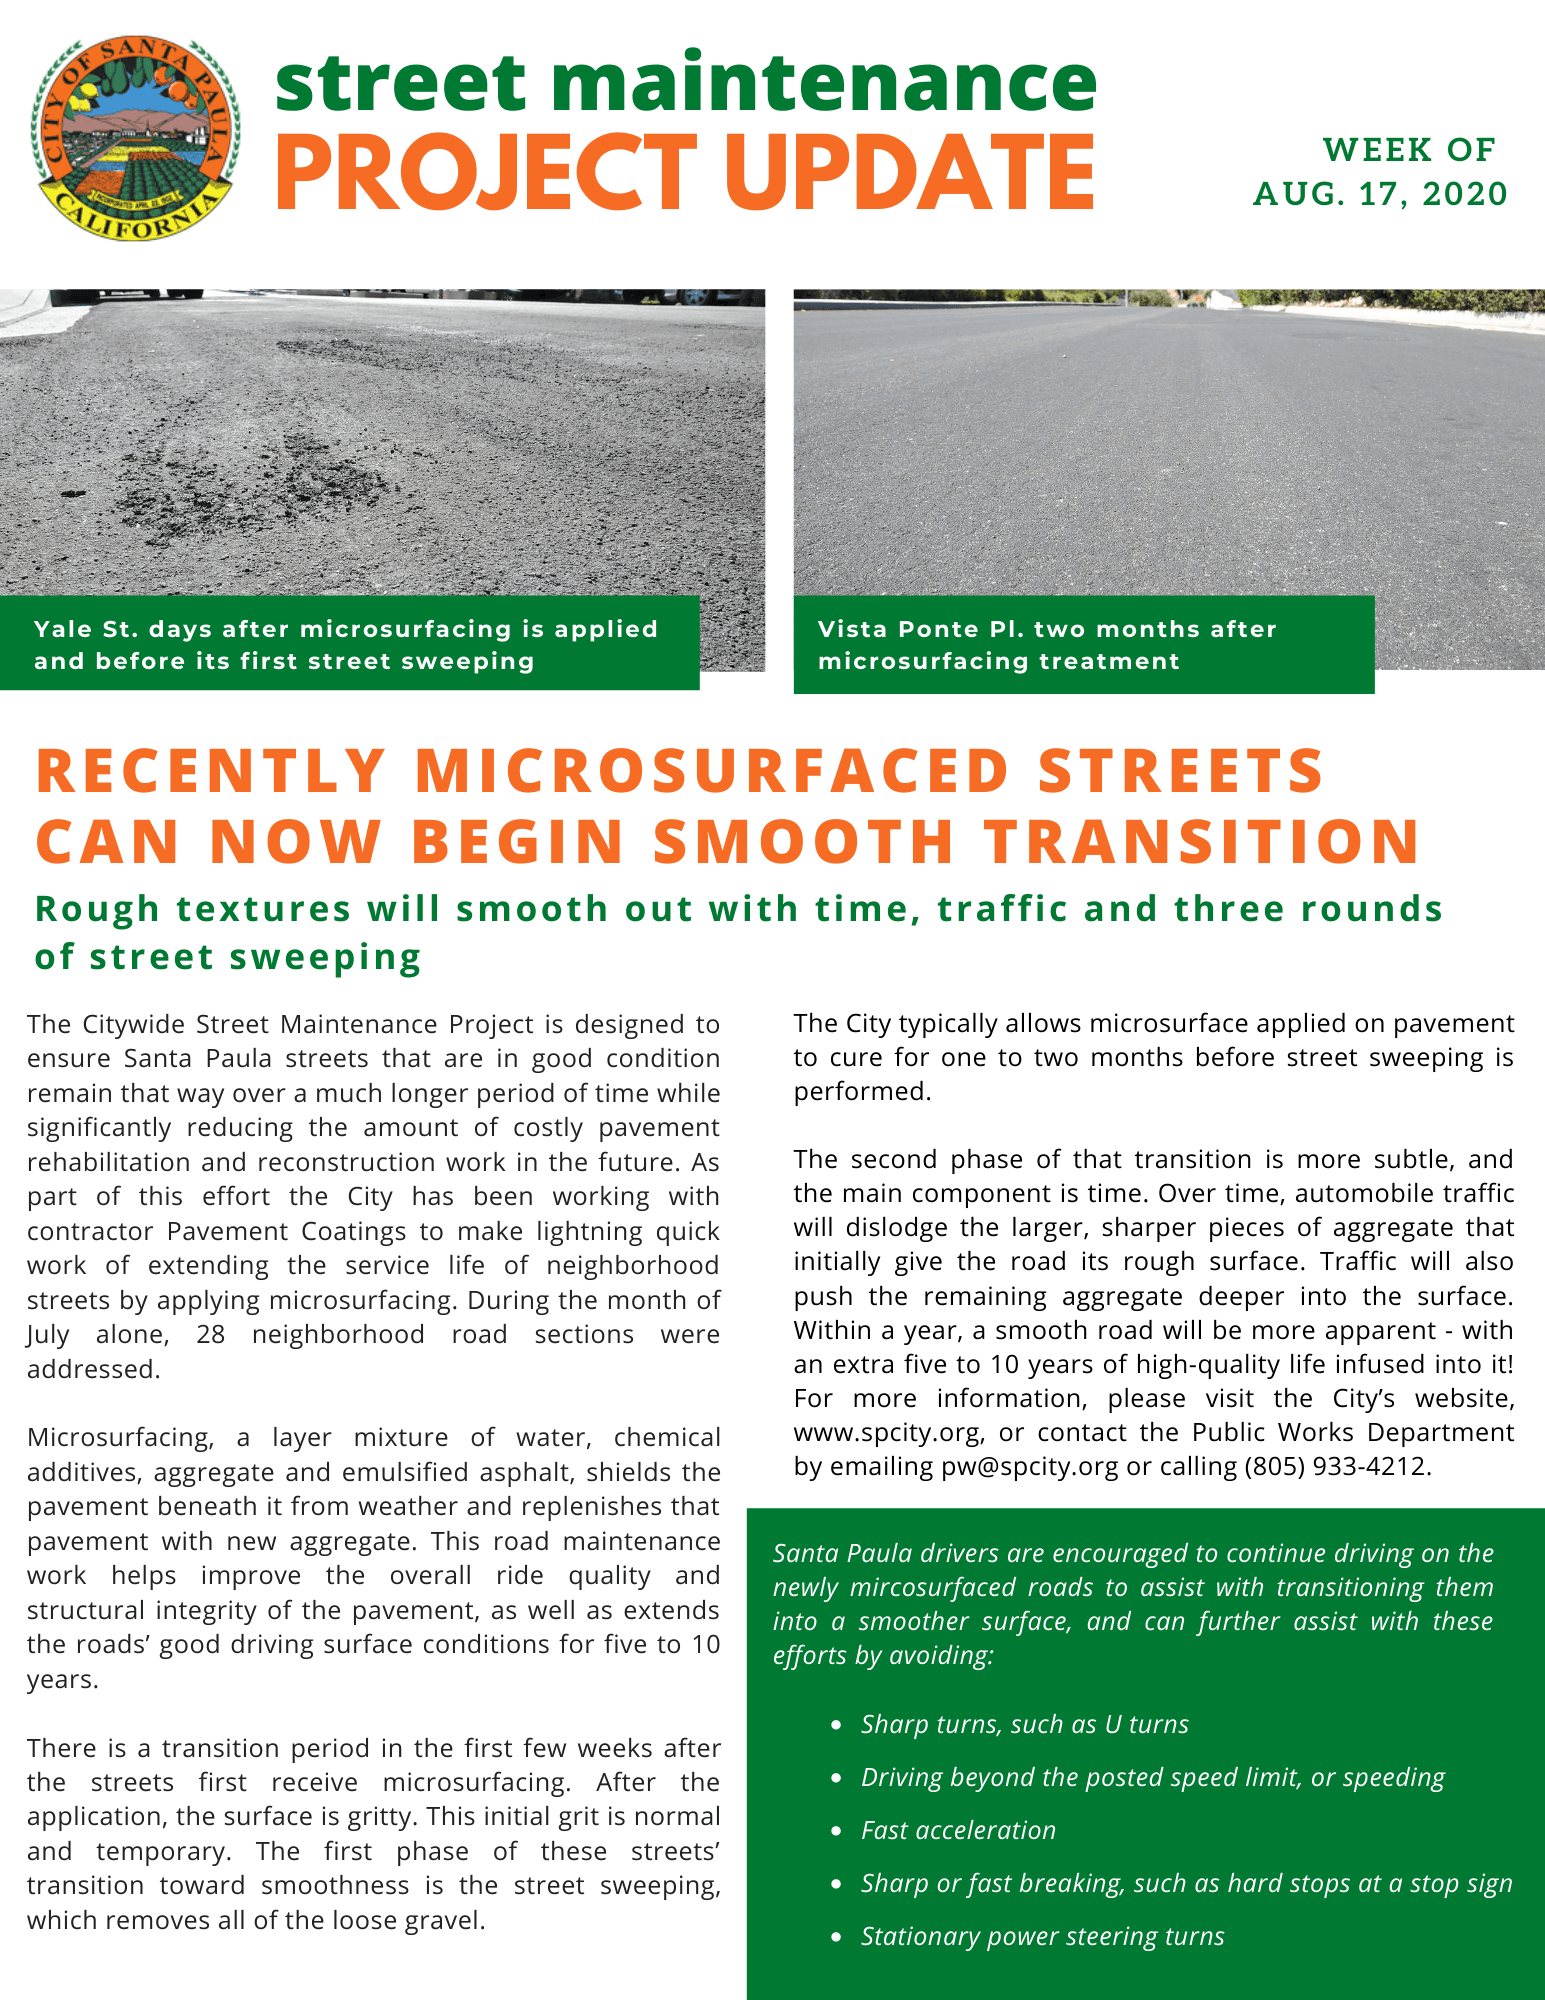 Street Maintenance Project Update Bulletin (English)